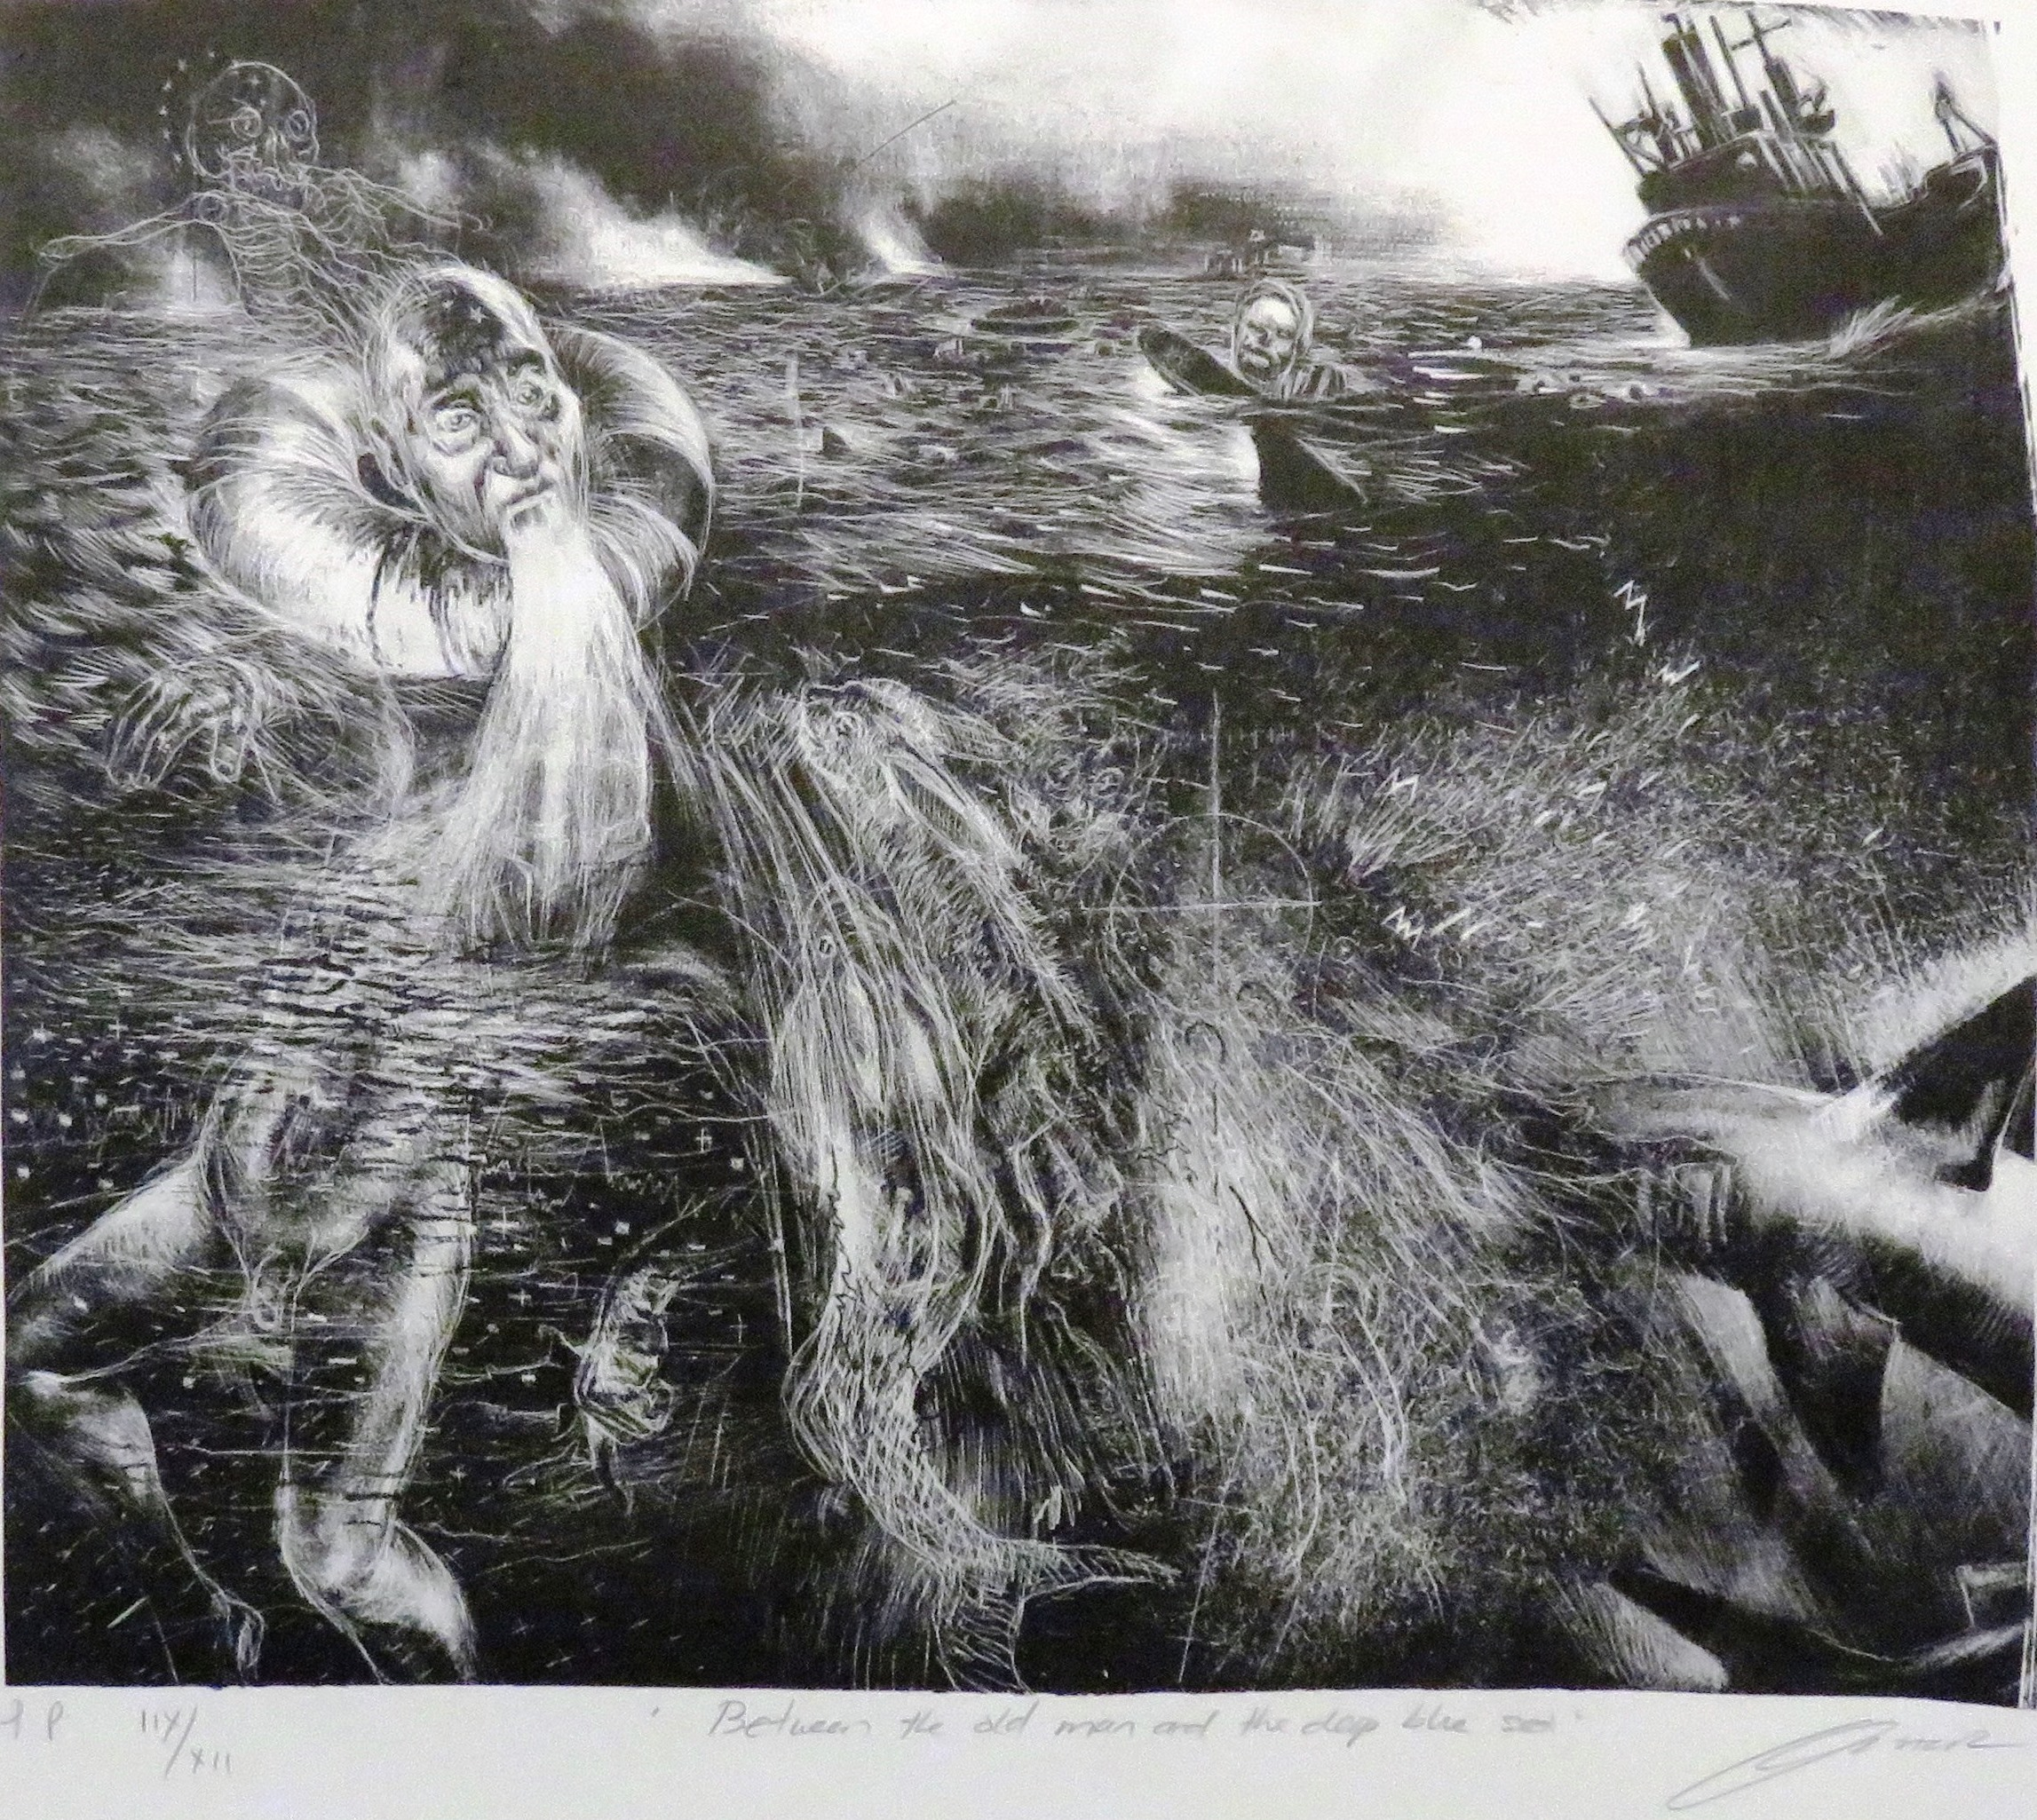 99A DIANE VICTOR, BETWEEN THE OLD MAN & DEEP BLUE SEA, ETCHING ON PAPER